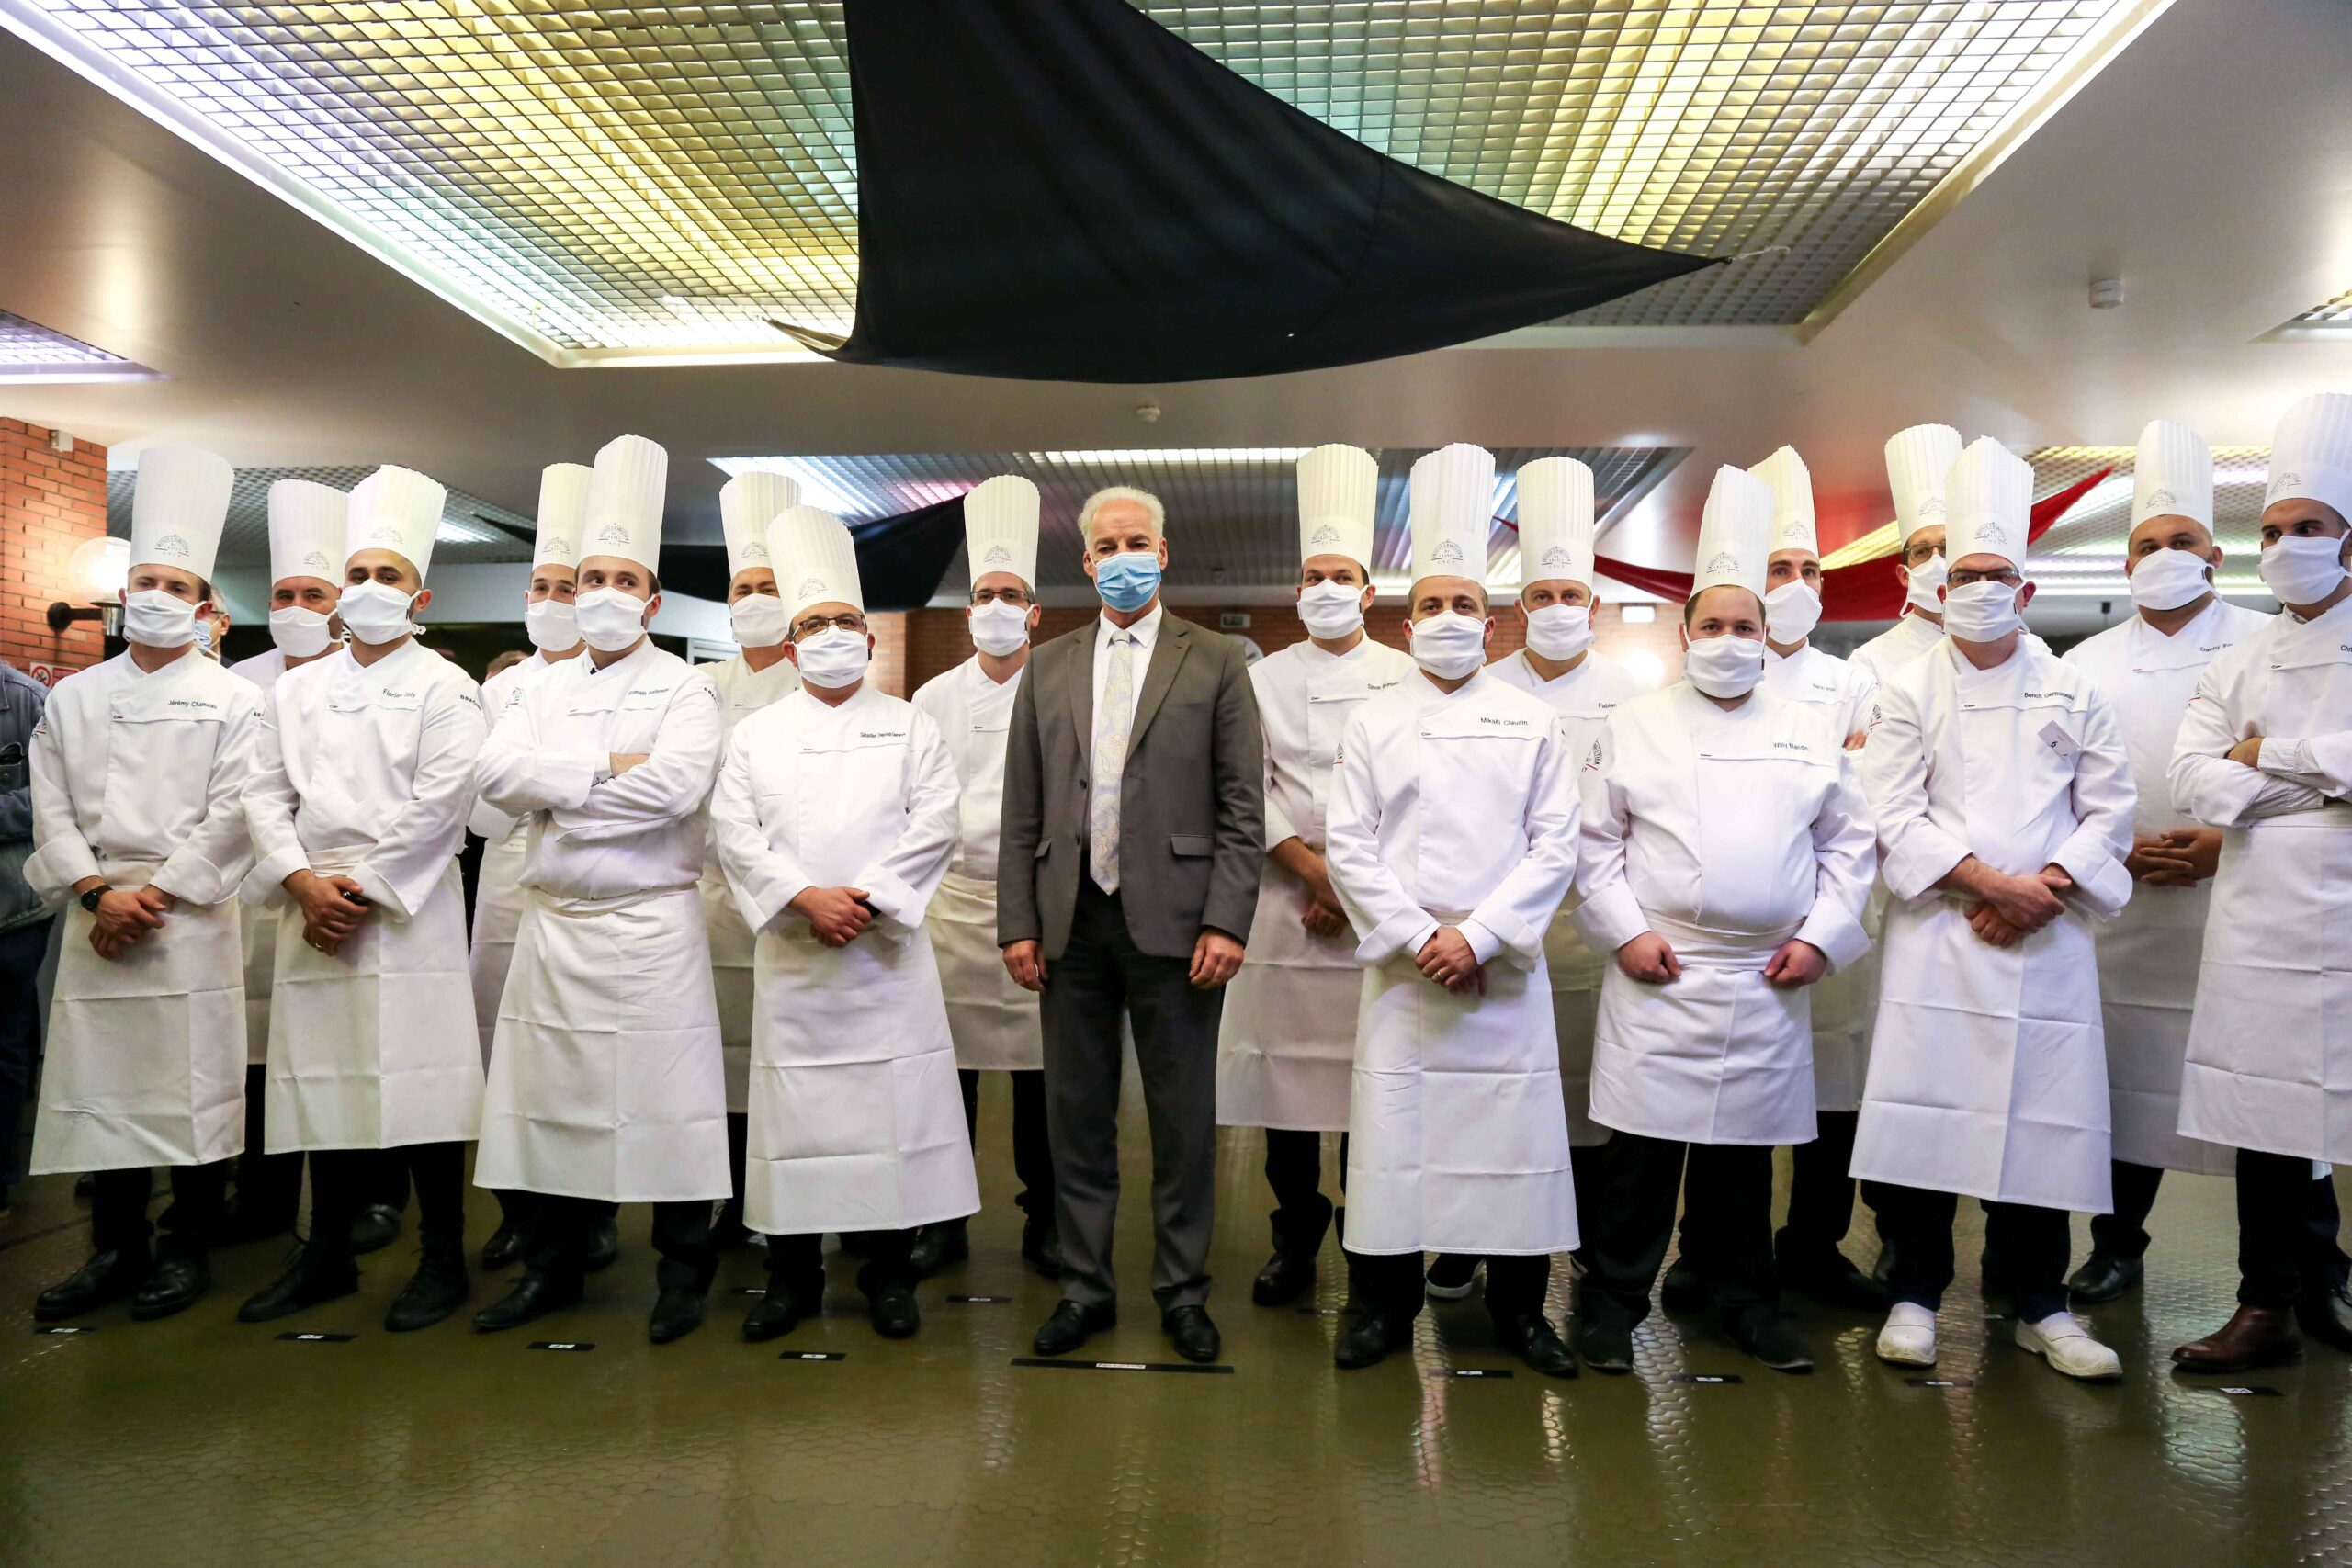 French Junior Minister of Small and Medium Entreprises Alain Griset (C) visits the Culinary Professions Centre of Excellence (Centre d'excellence des professions culinaires – CEPROC) for the awards ceremony of the Grand Prix of France for artisanal cha